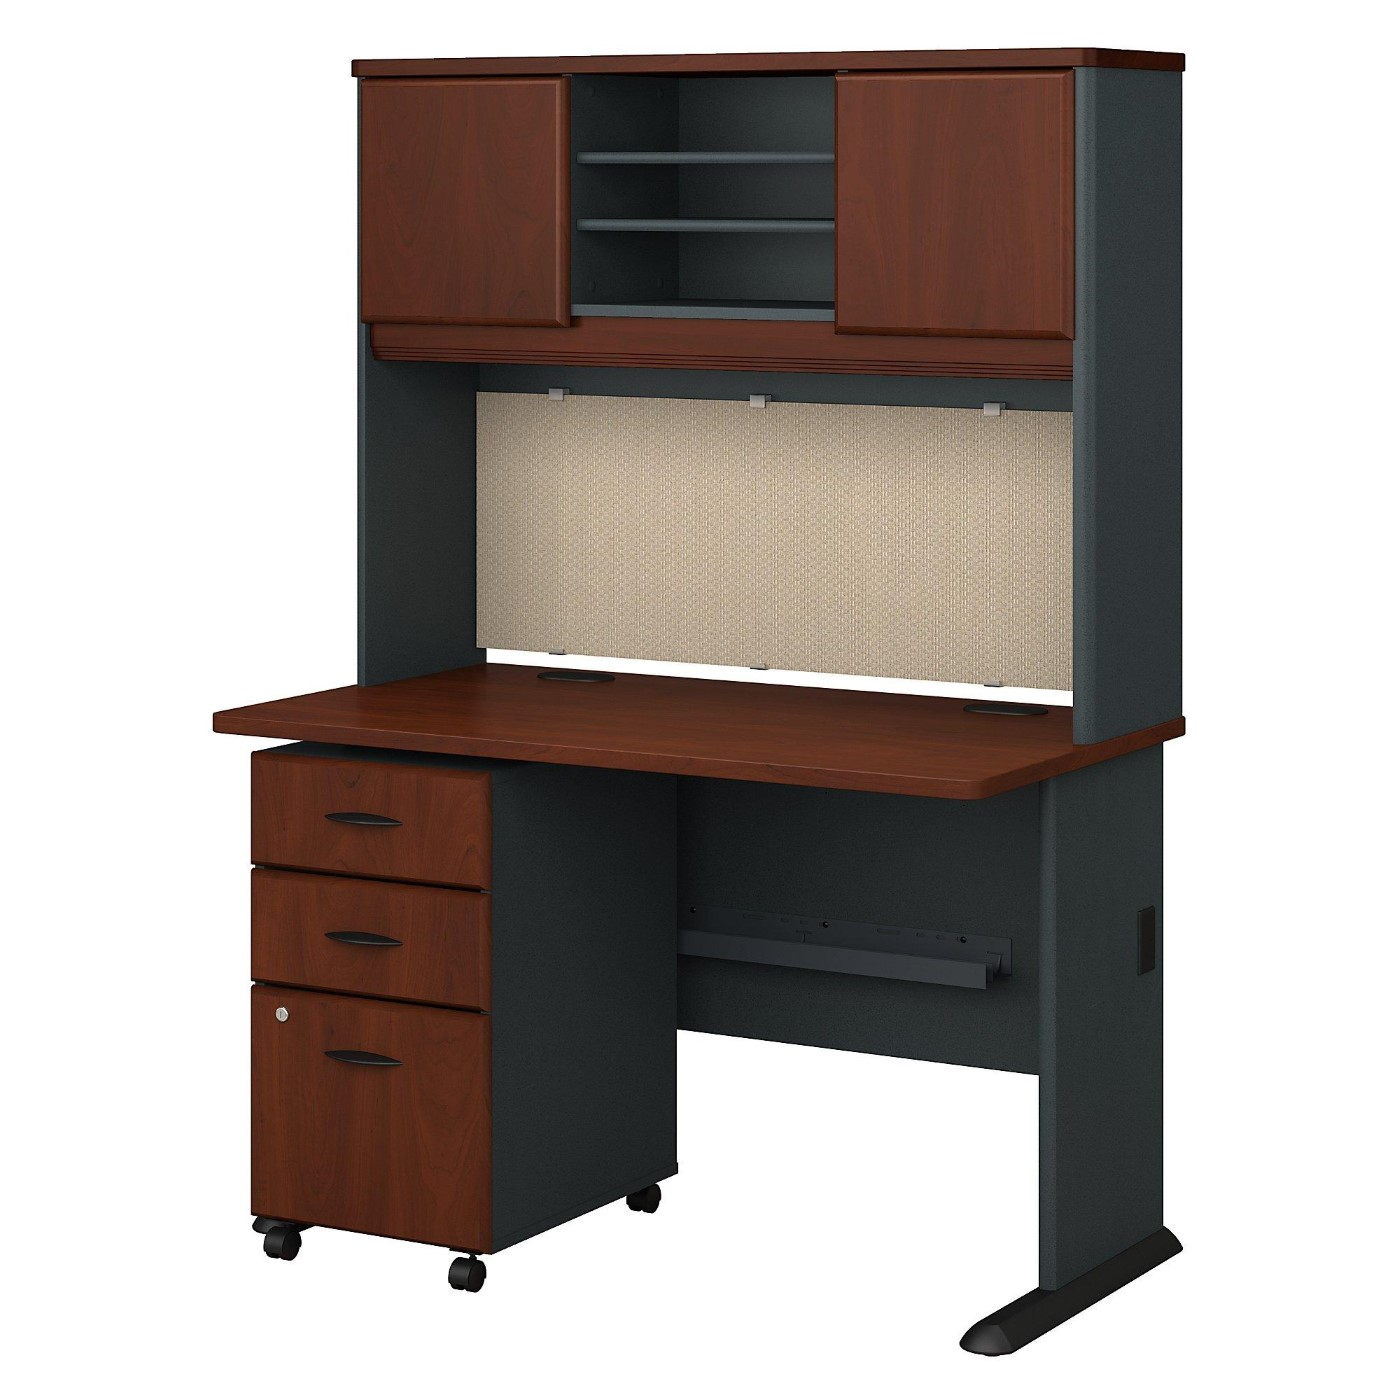 BUSH BUSINESS FURNITURE SERIES A 48W DESK WITH HUTCH AND MOBILE FILE CABINET #EH-SRA049HCSU. TAA COMPLIANT. FREE SHIPPING.